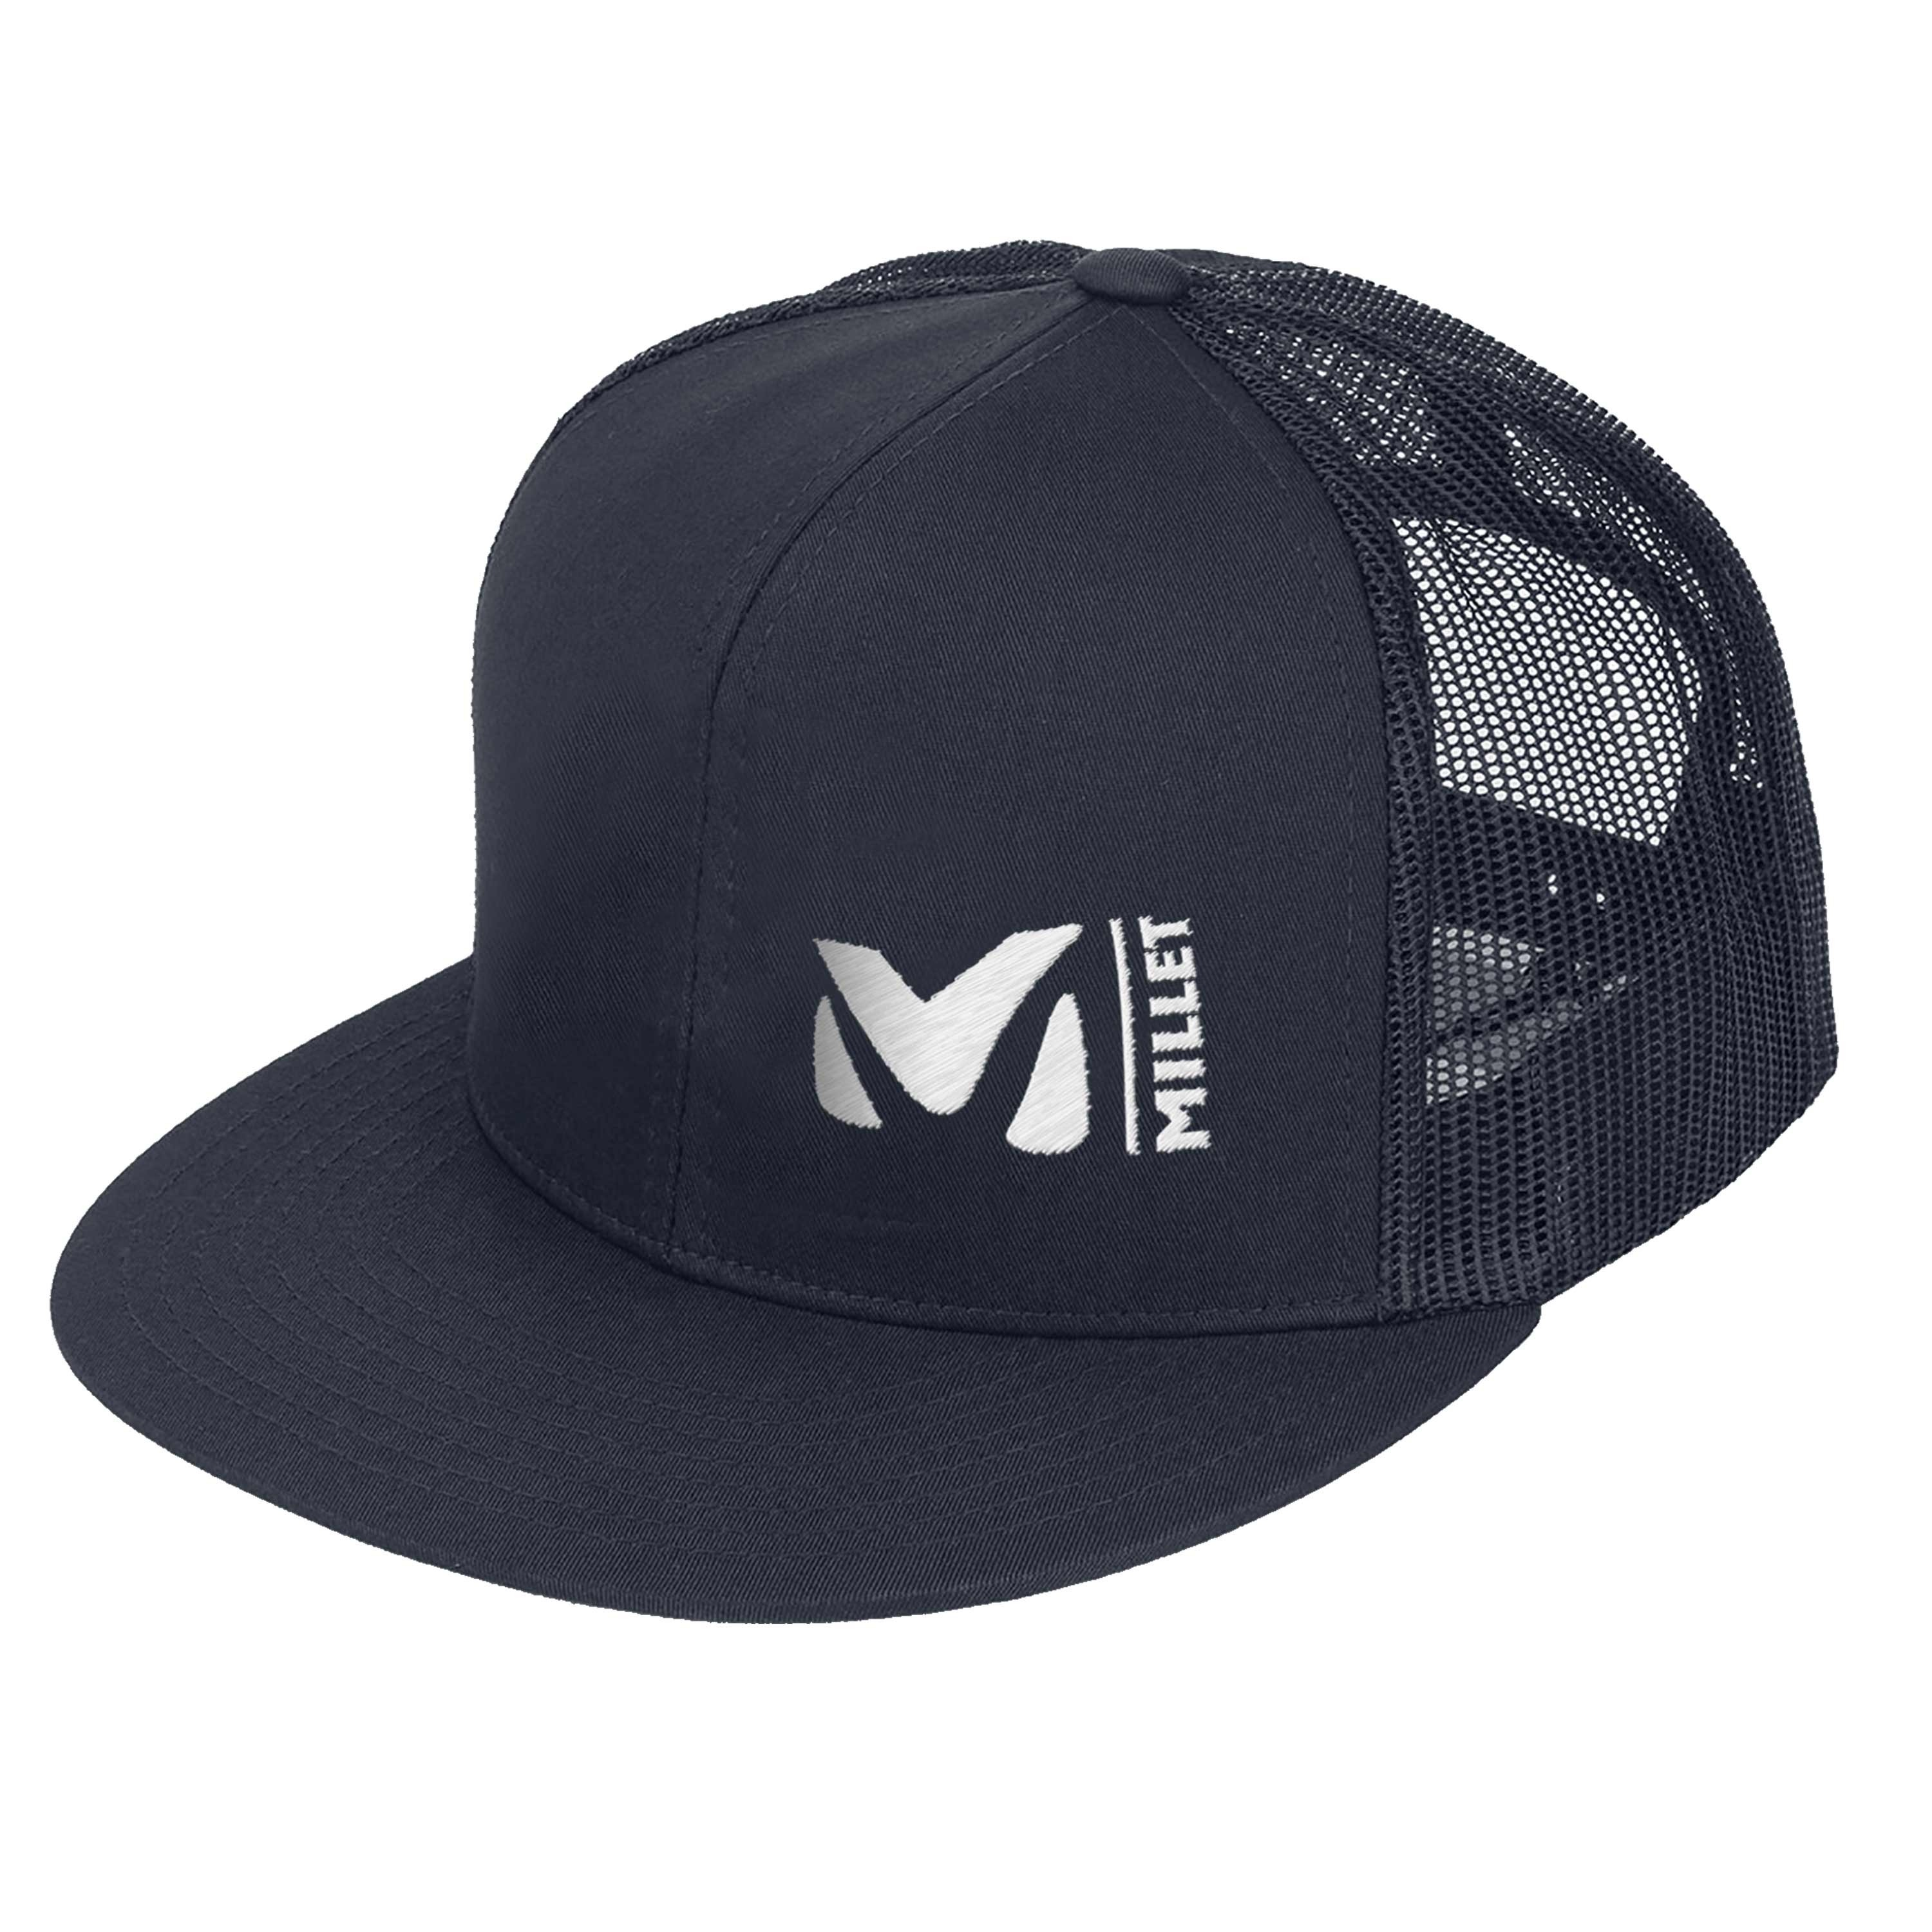 Limited Edition Cap Navy